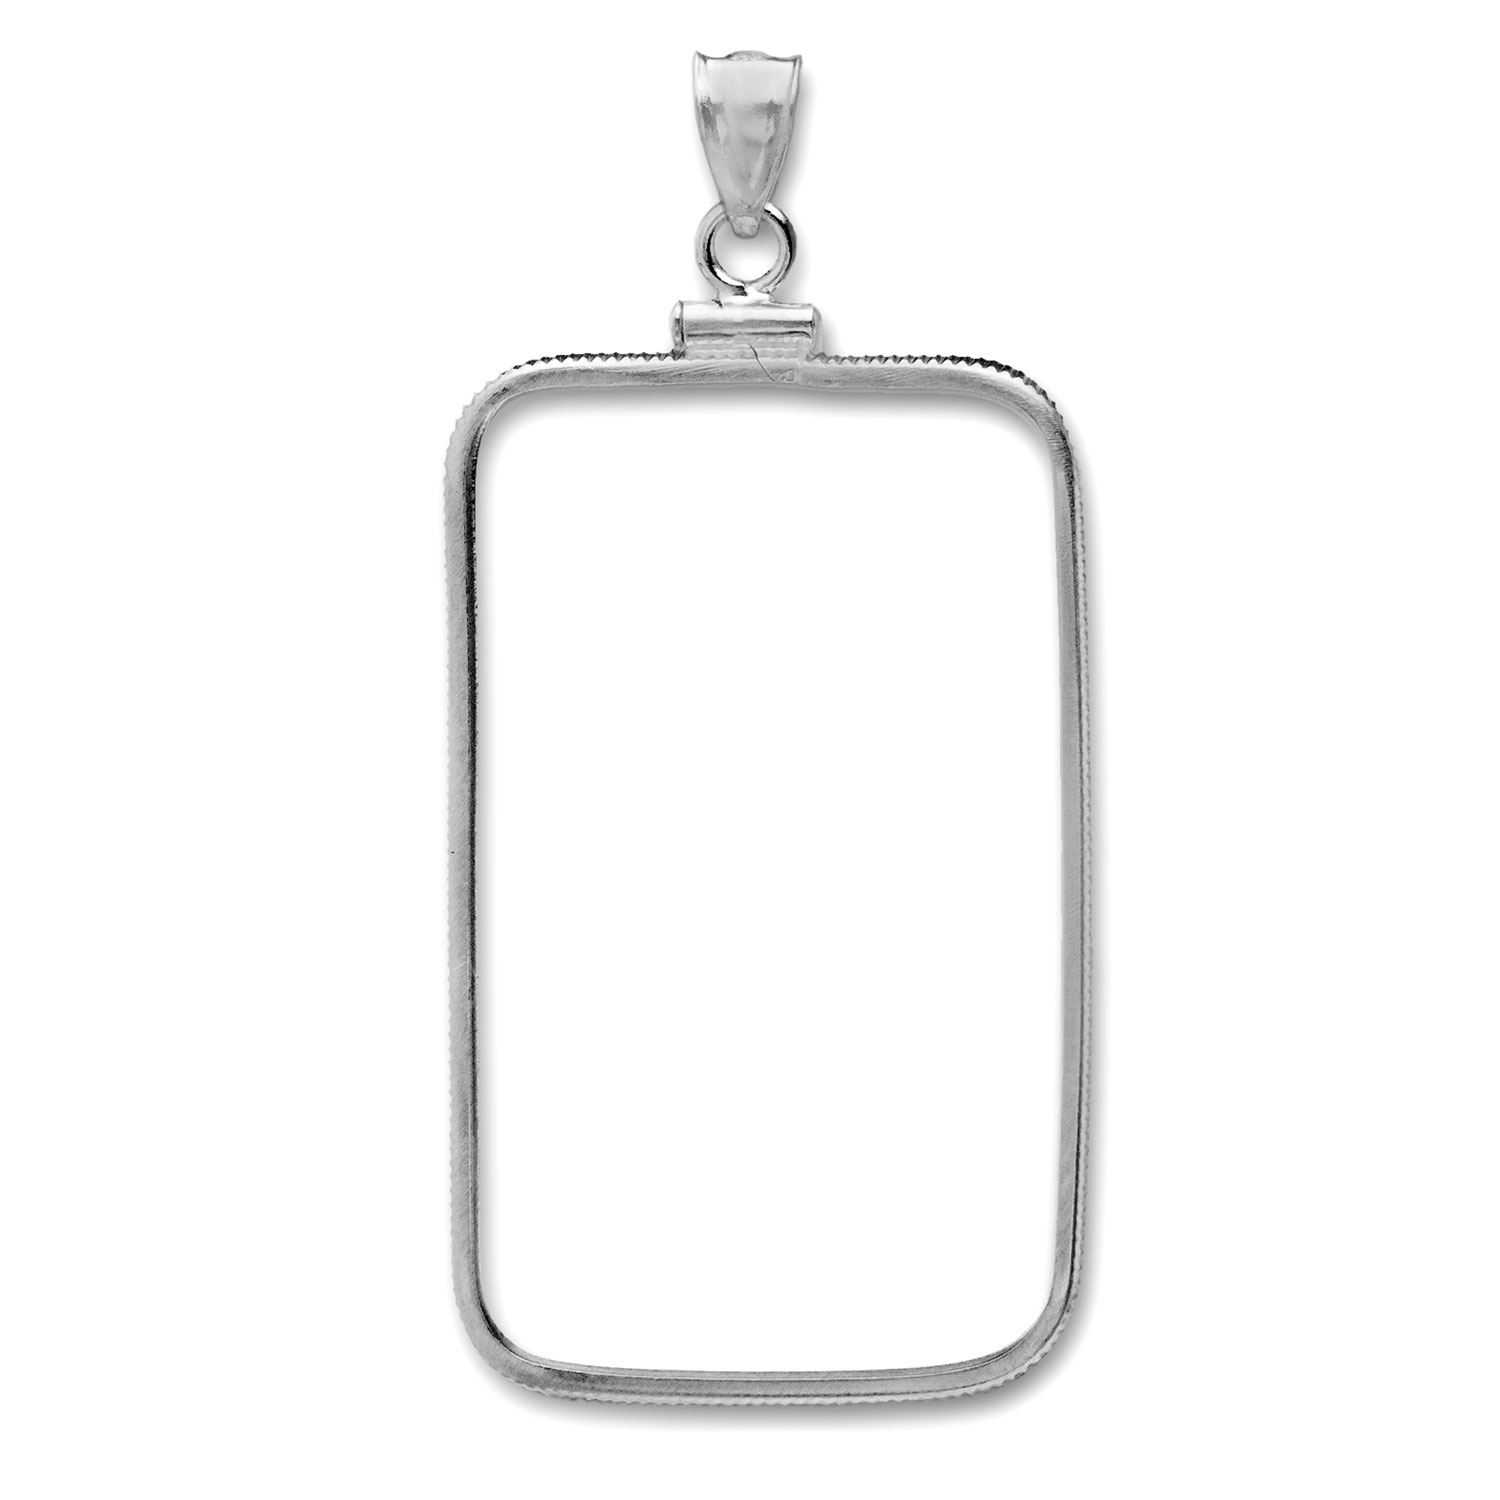 Sterling Silver Bezels (Fits 1 oz Silvertowne Bars) (Plain Front)